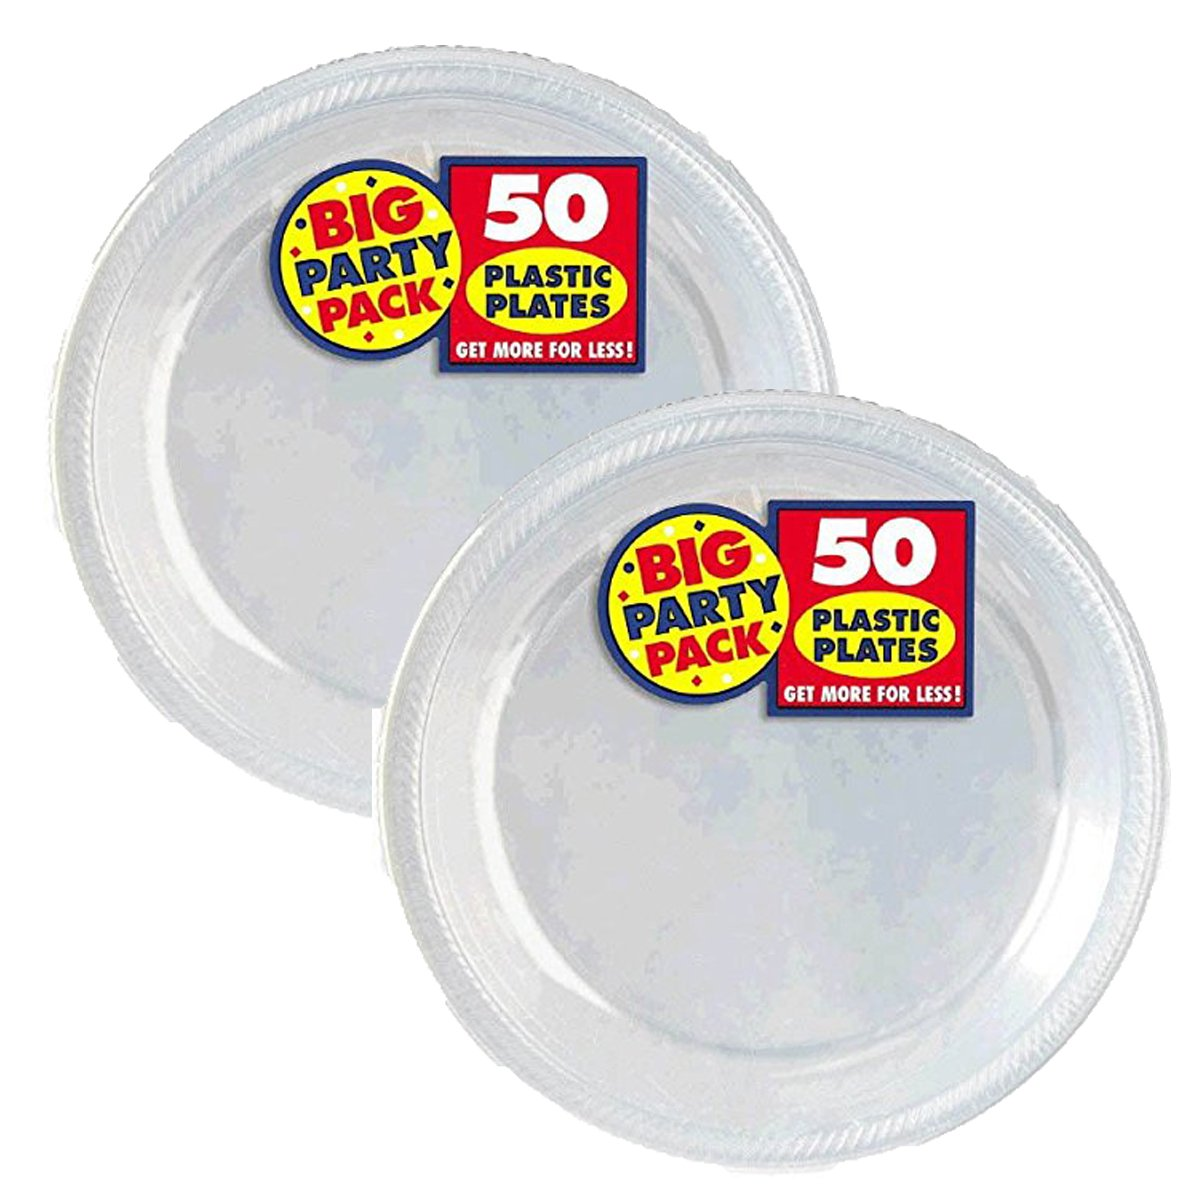 Amscan Big Party Pack Plastic Lunch Plates, 10.5-Inch, Clear, 100 Count by Amscan